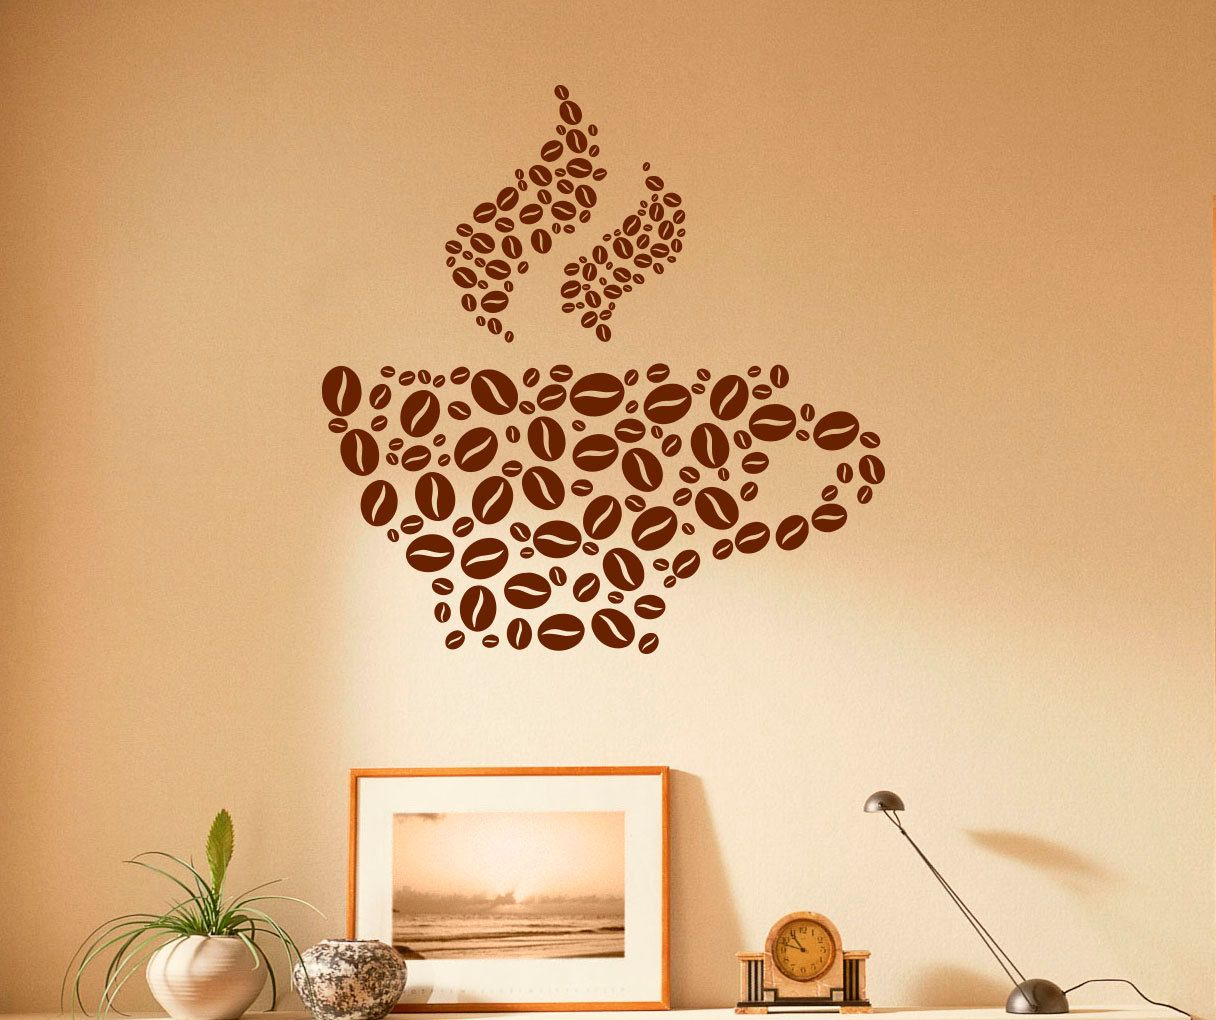 Coffee Cup Wall Decal Coffee Beans Vinyl Stickers Cafe Interior Home ...